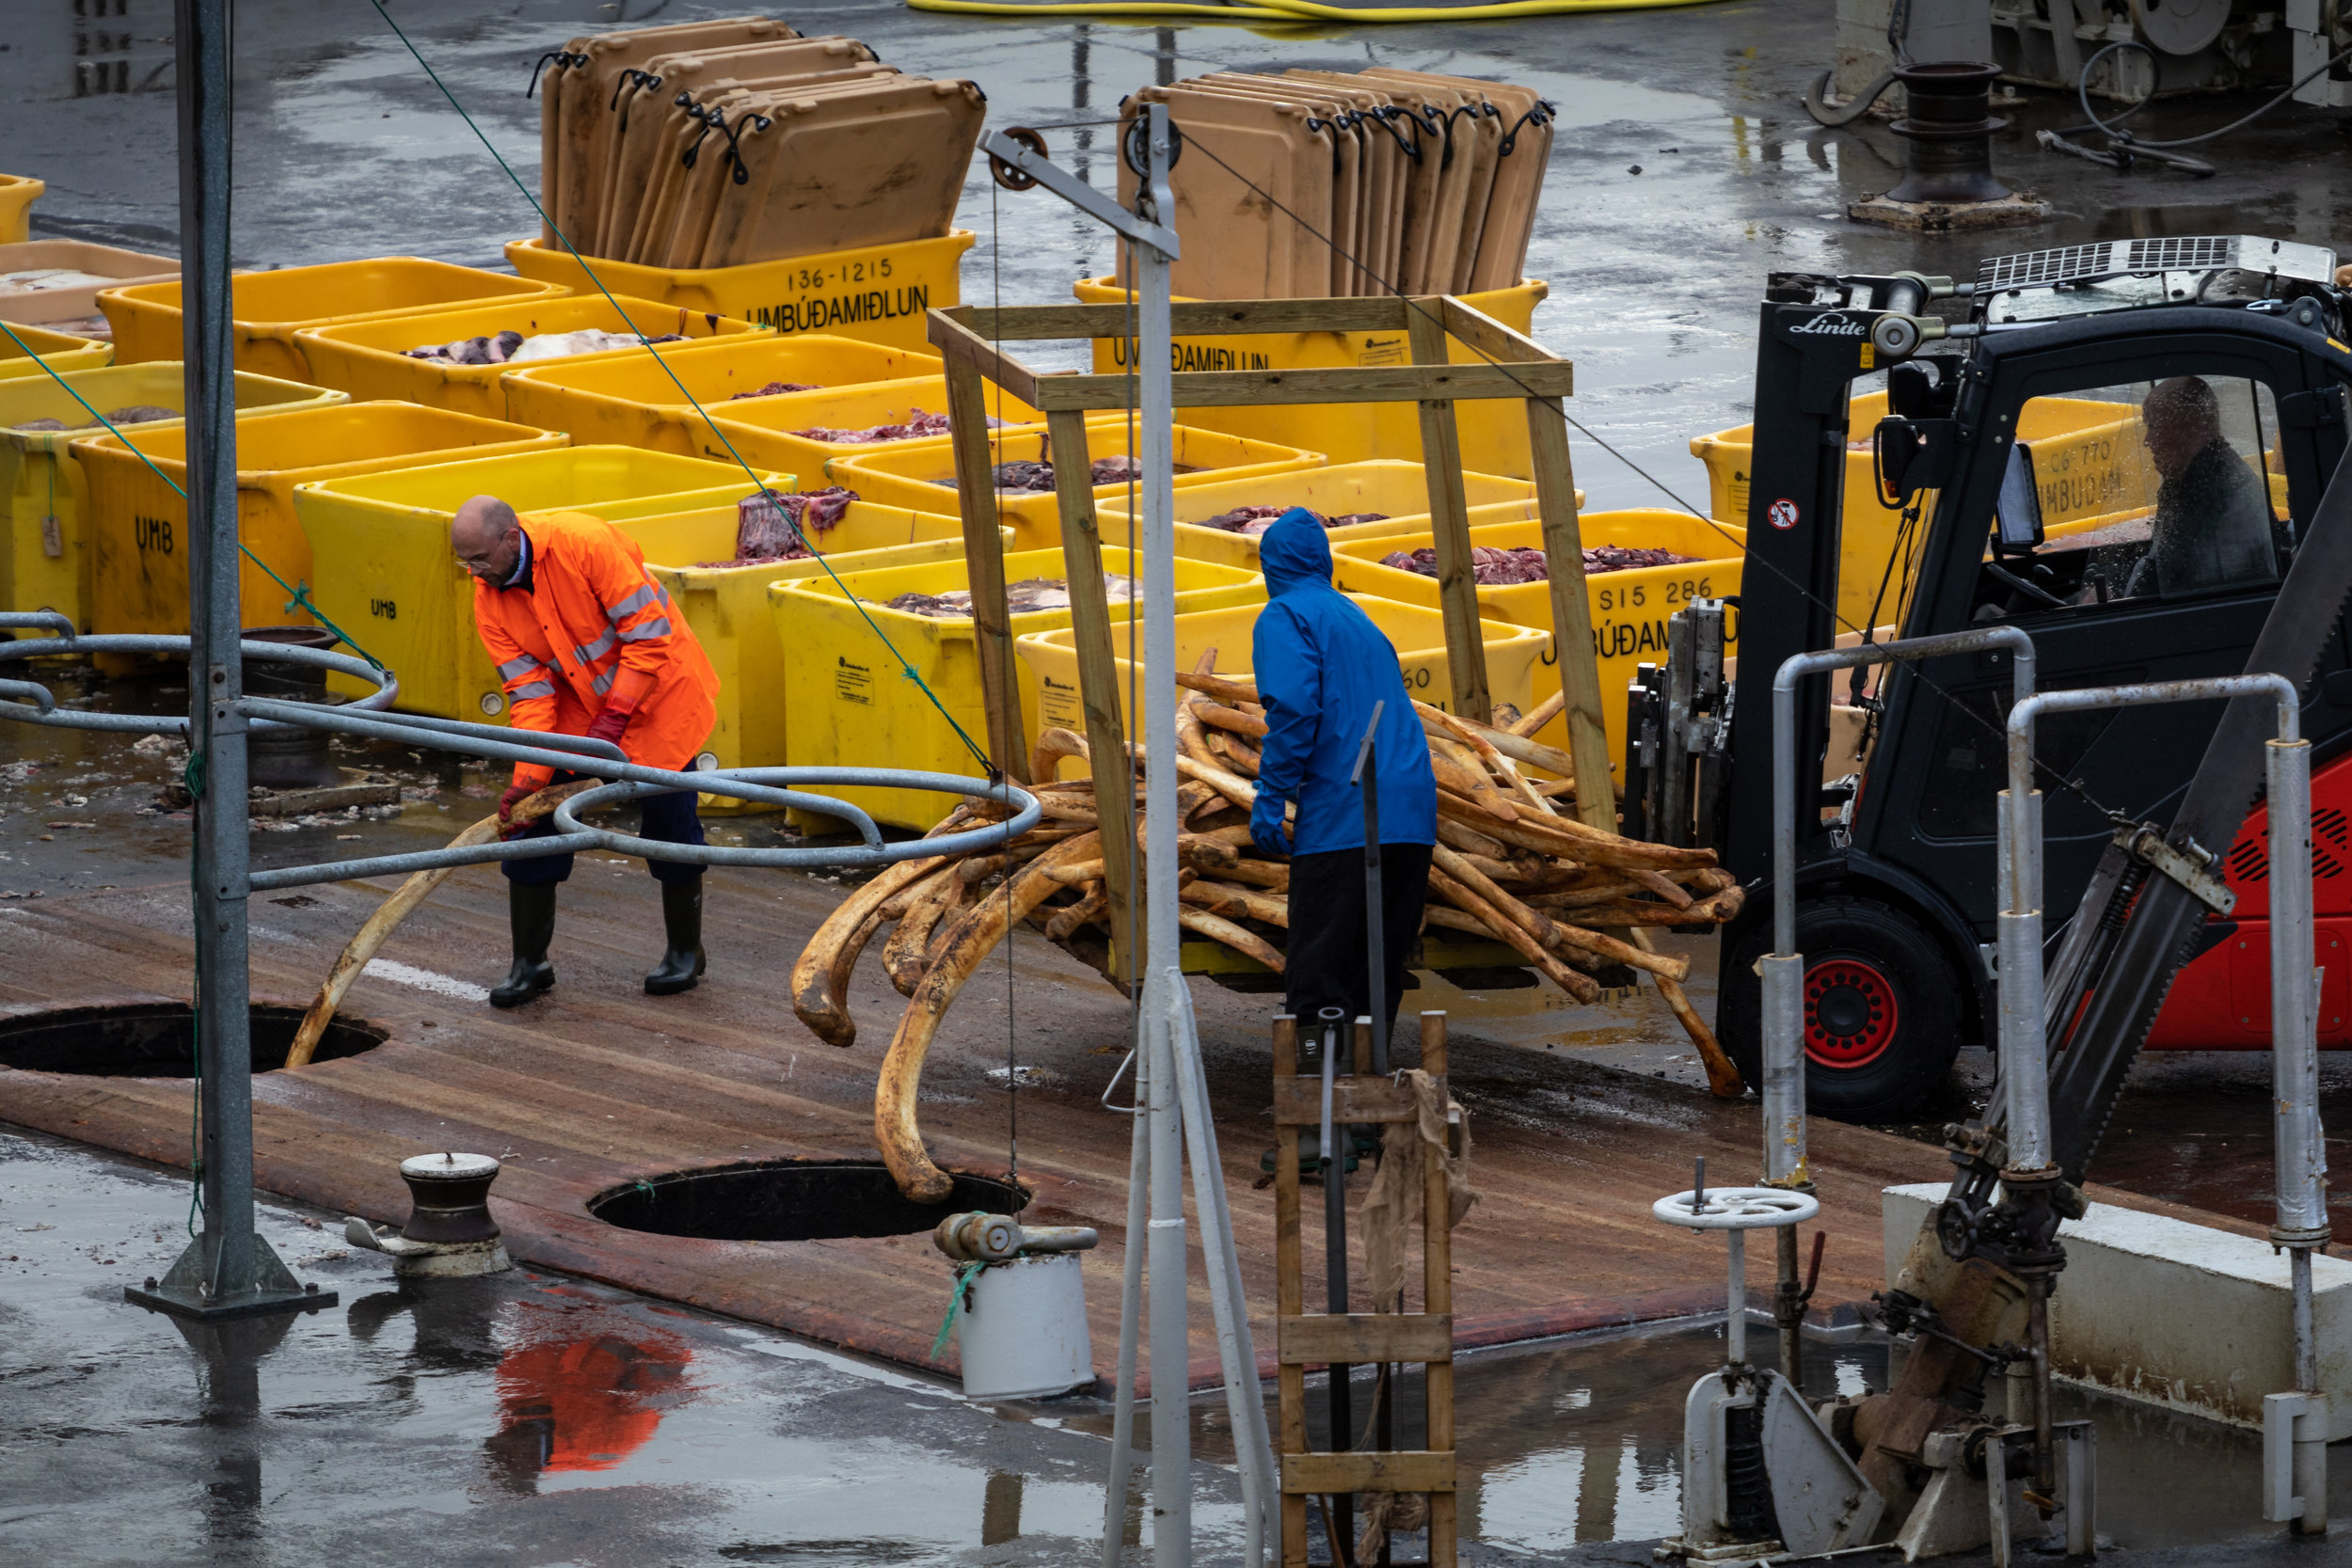 The whale ribs are discarded into the holes, a forklift required to lift them all